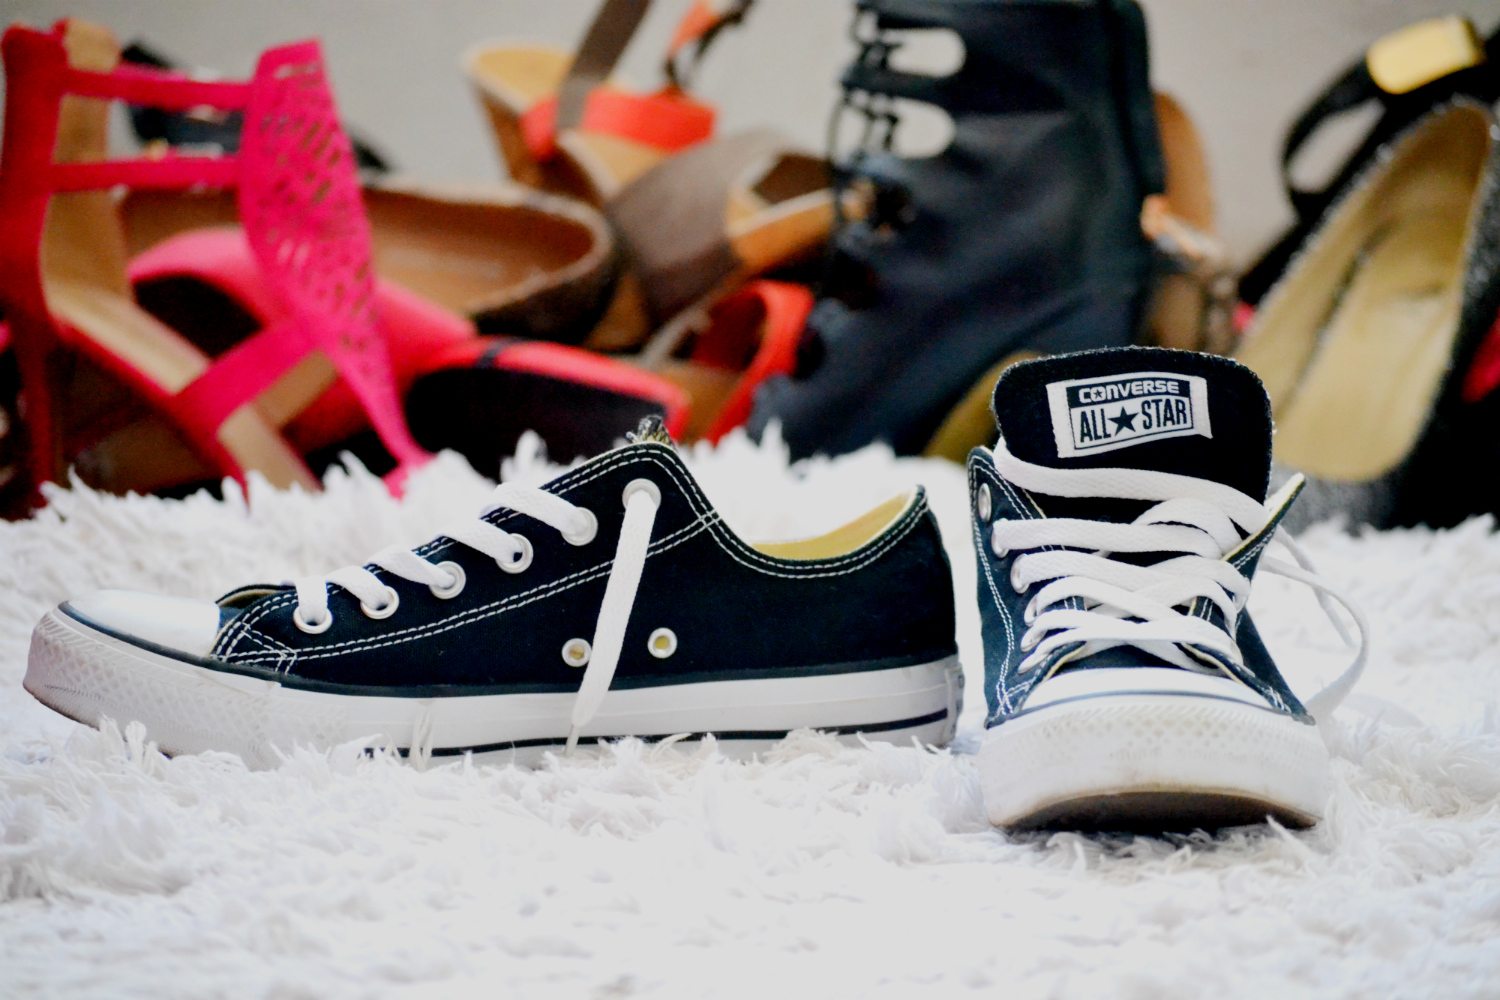 converse-all-star-south-africa-1